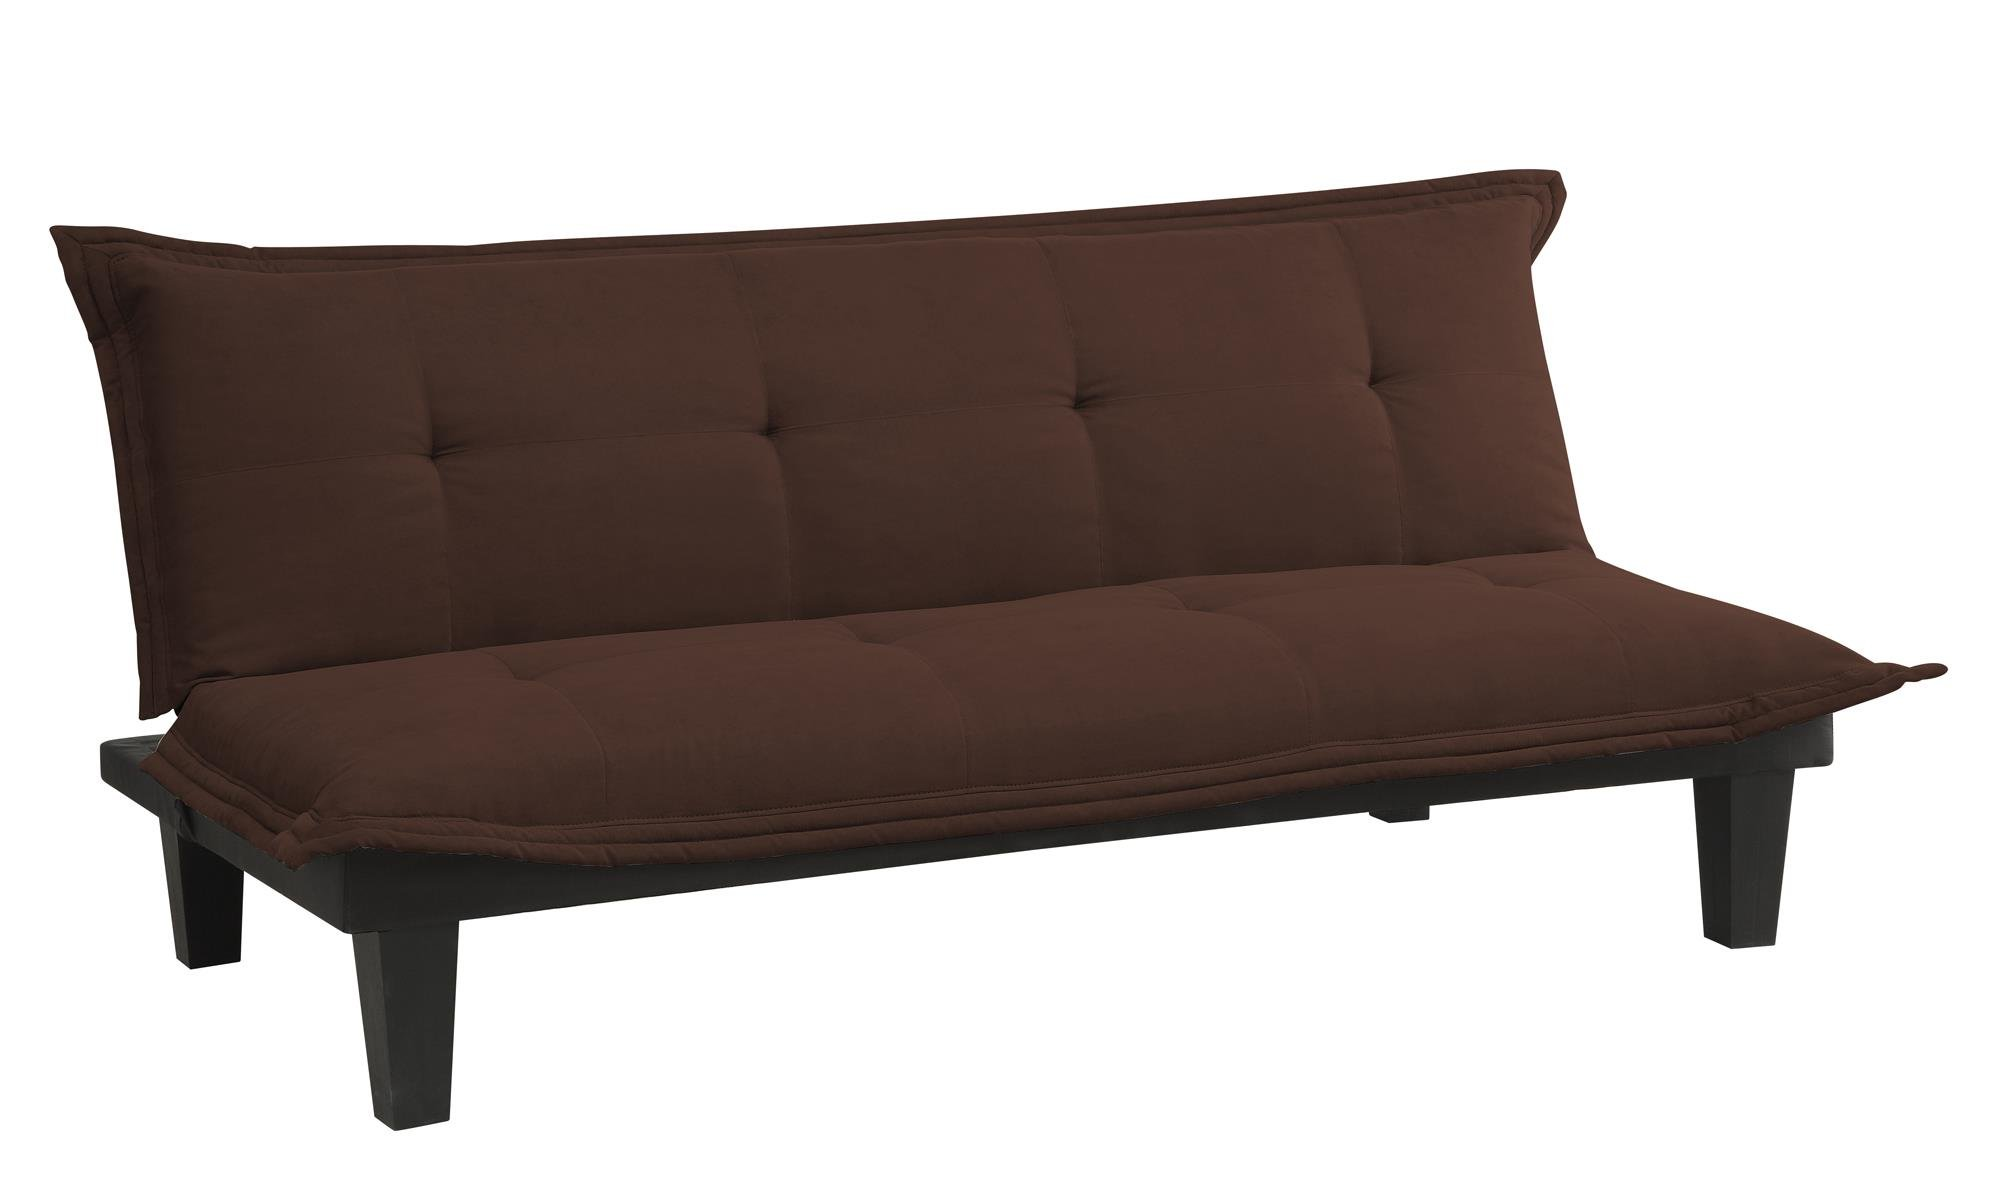 DHP Lodge Convertible Futon Couch Bed with Microfiber Upholstery and Wood Legs, Brown by DHP